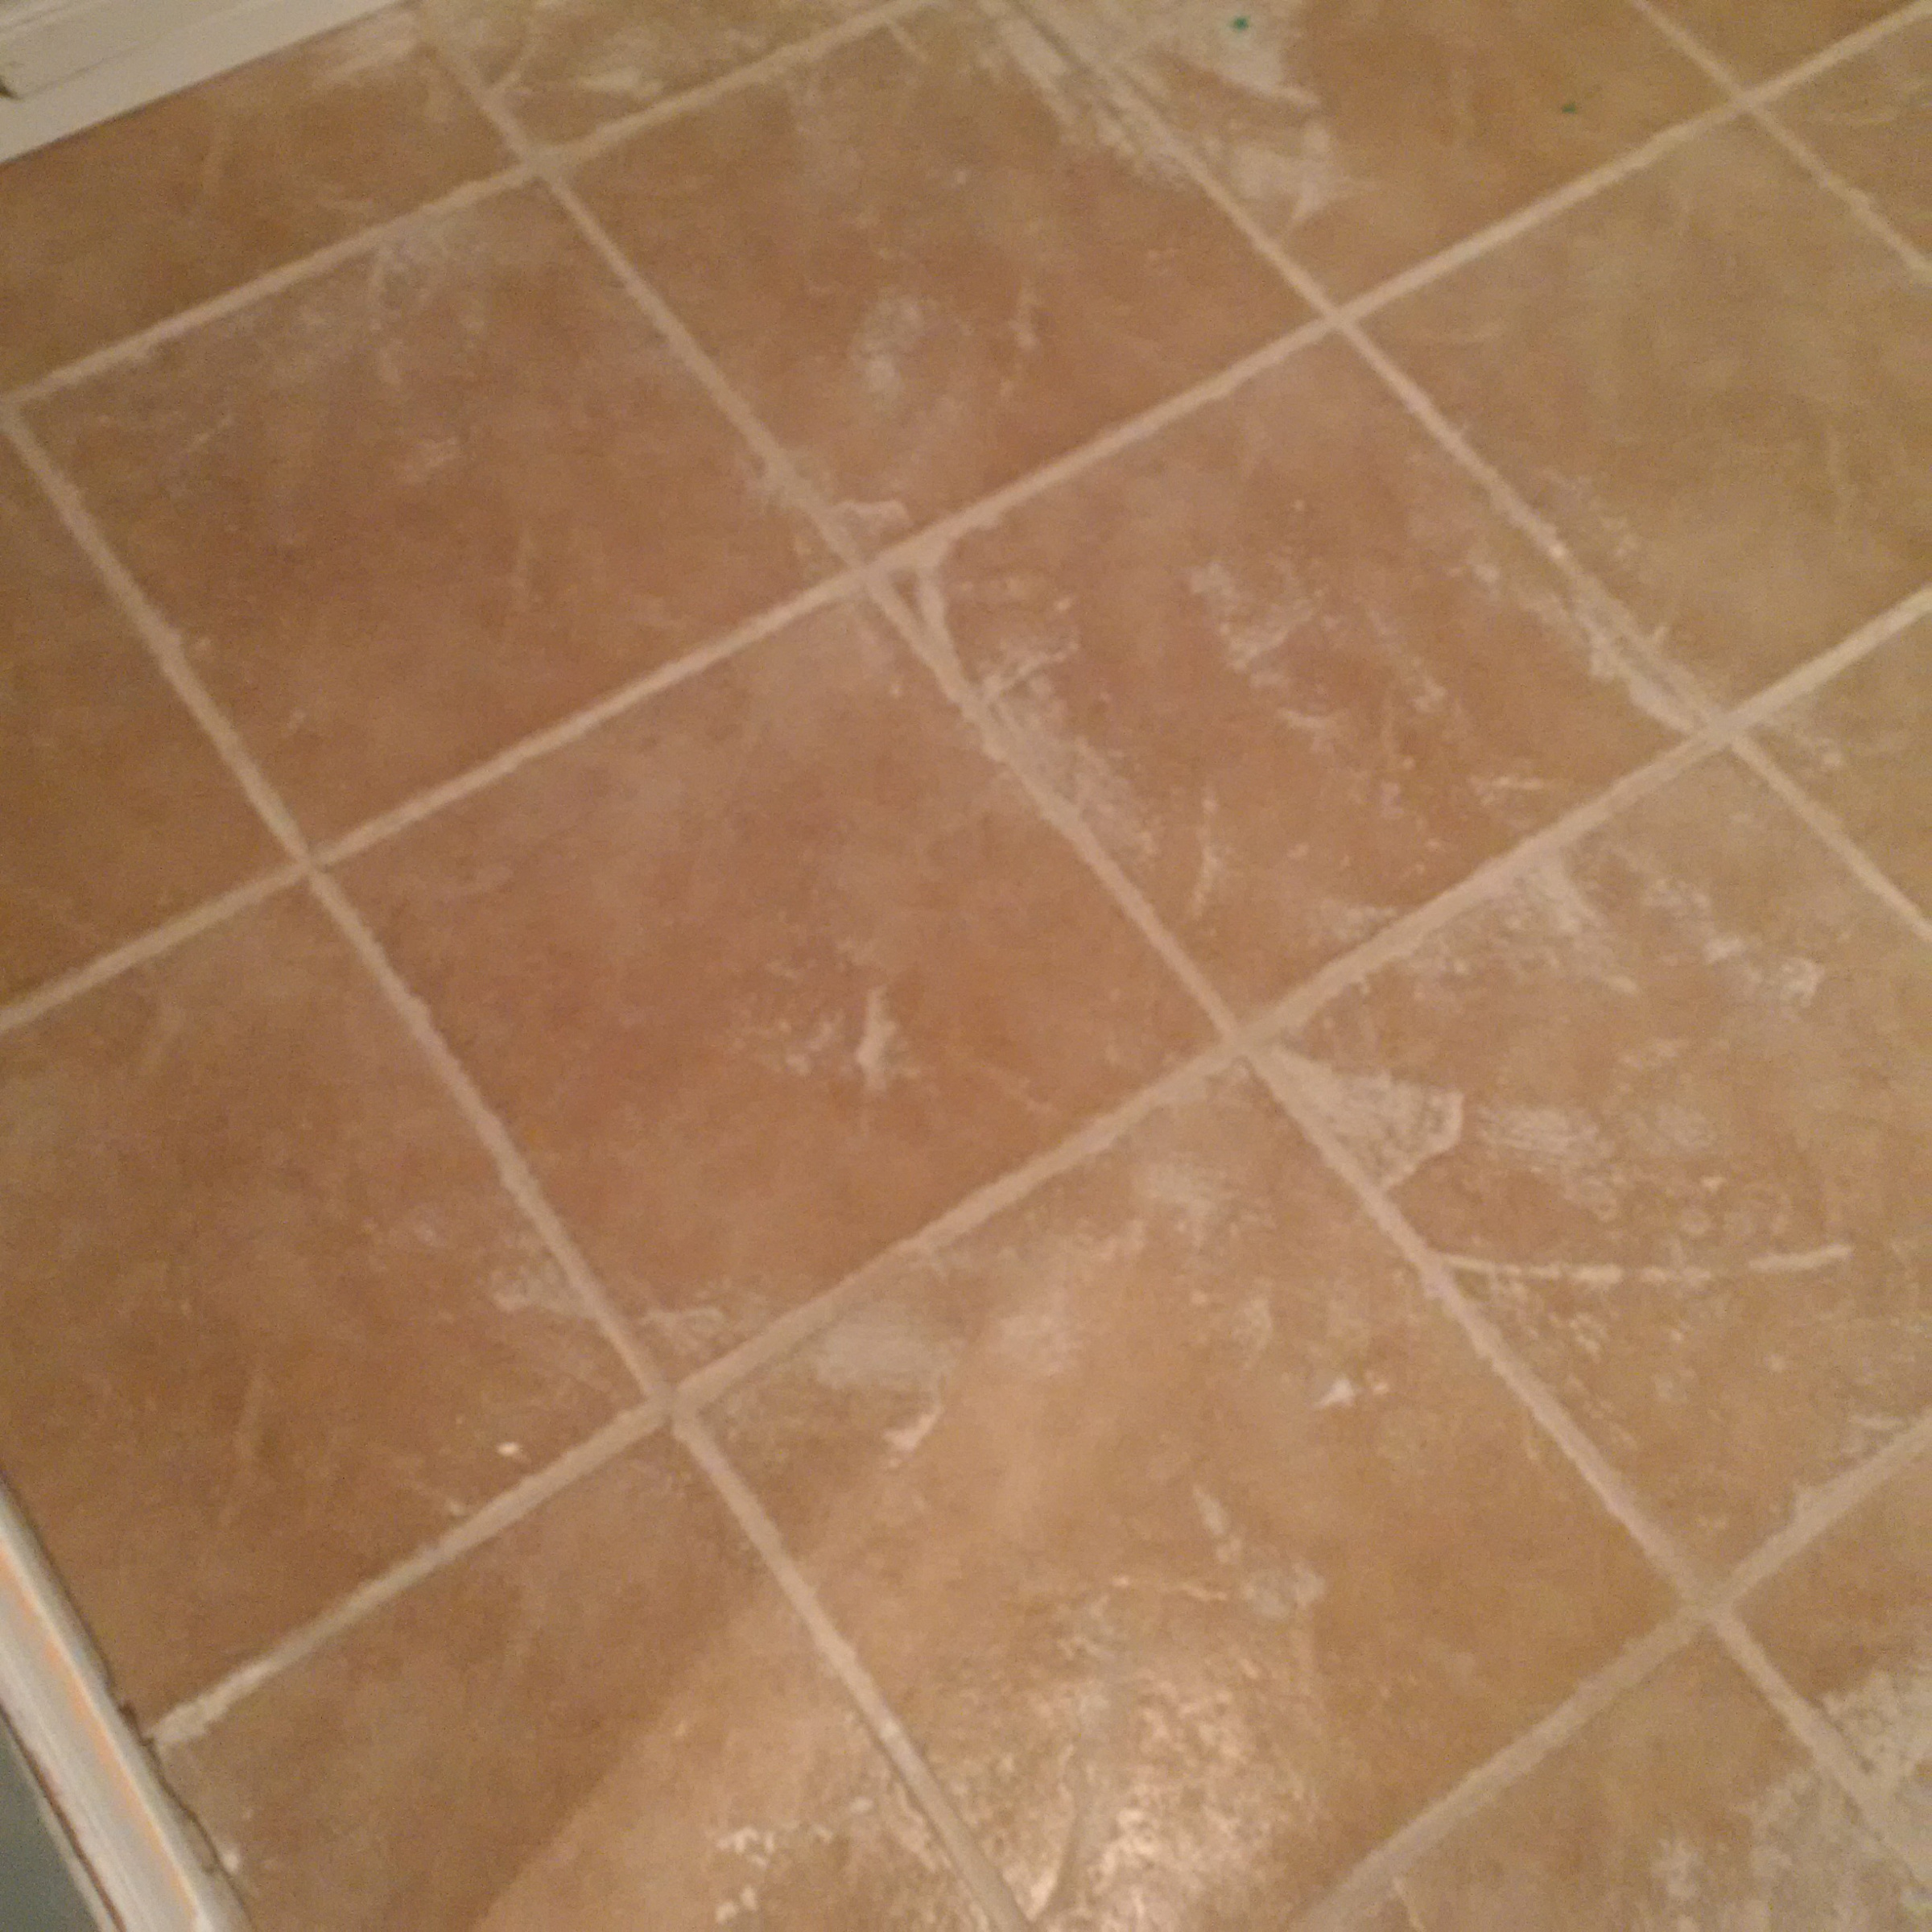 Remove grout from tile surface-img_20191226_225230.jpg